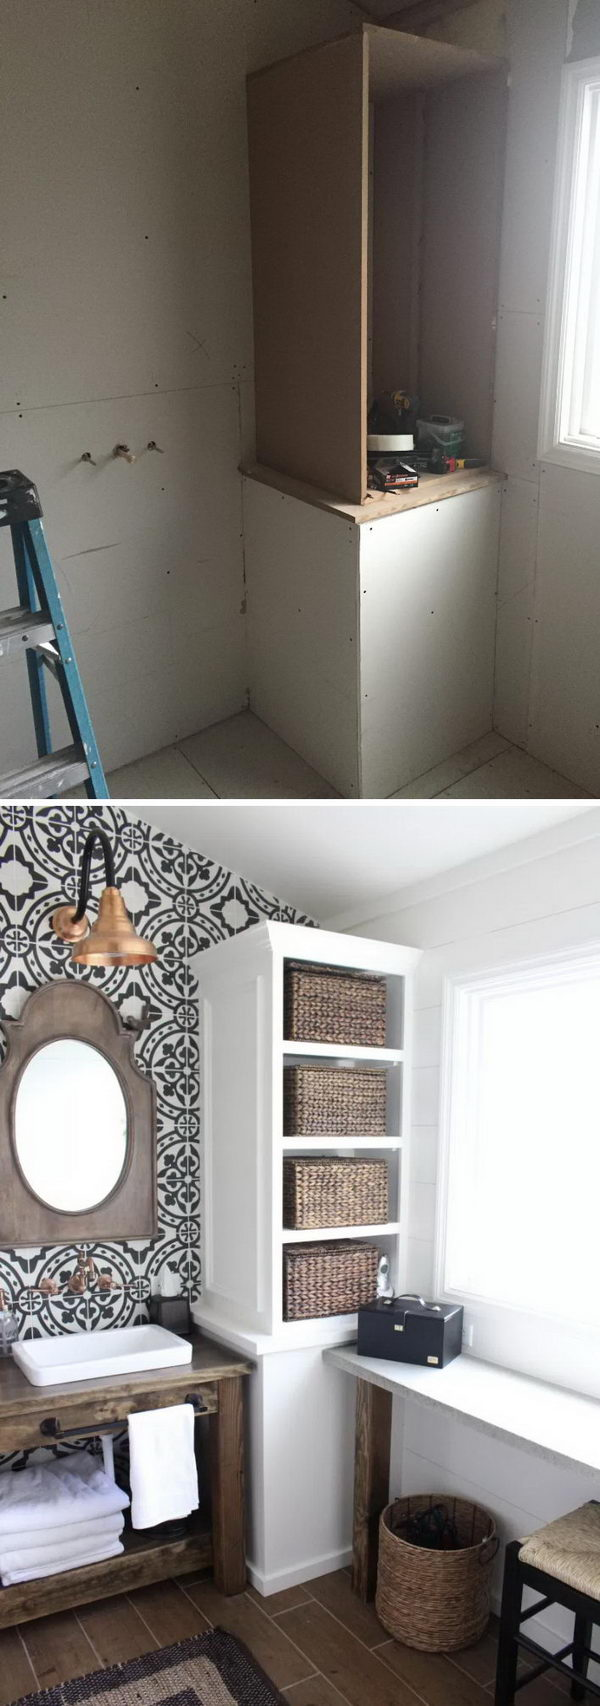 Modern Farmhouse Small Bathroom Renovation Before After